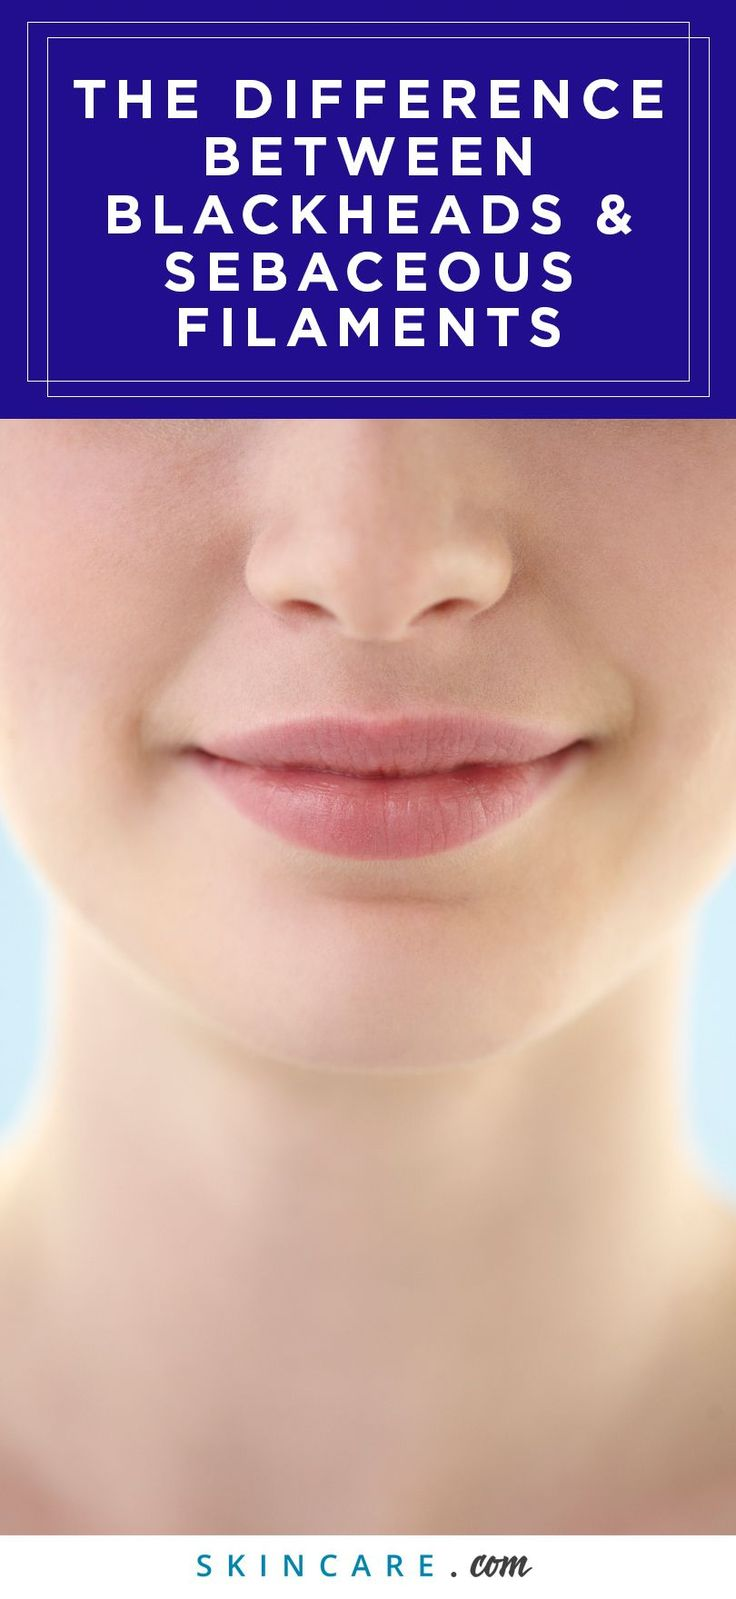 Skin Care Advice For Better Skin Now